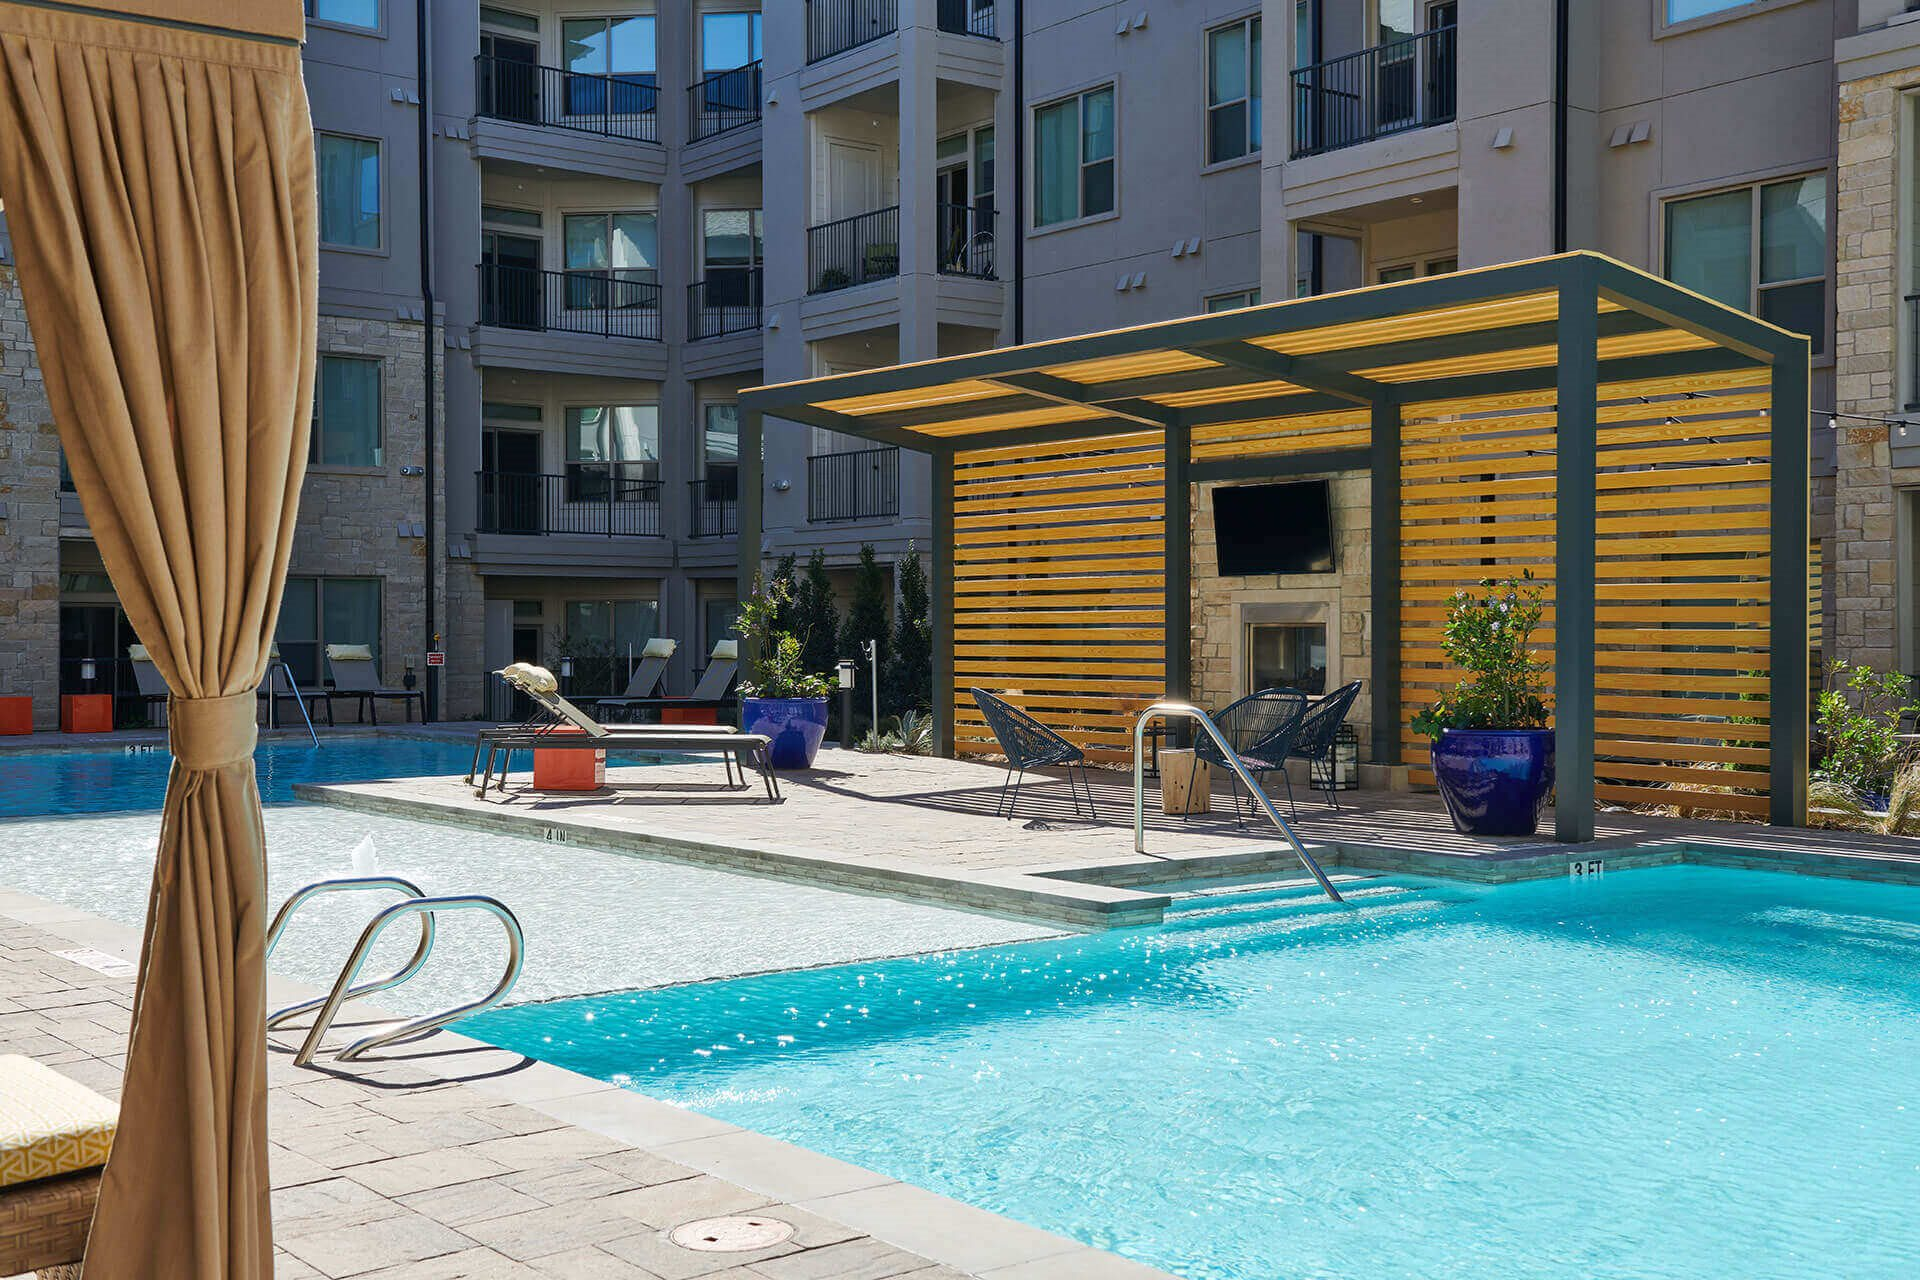 Pool Deck with TV at Windsor Burnet, 78758, TX